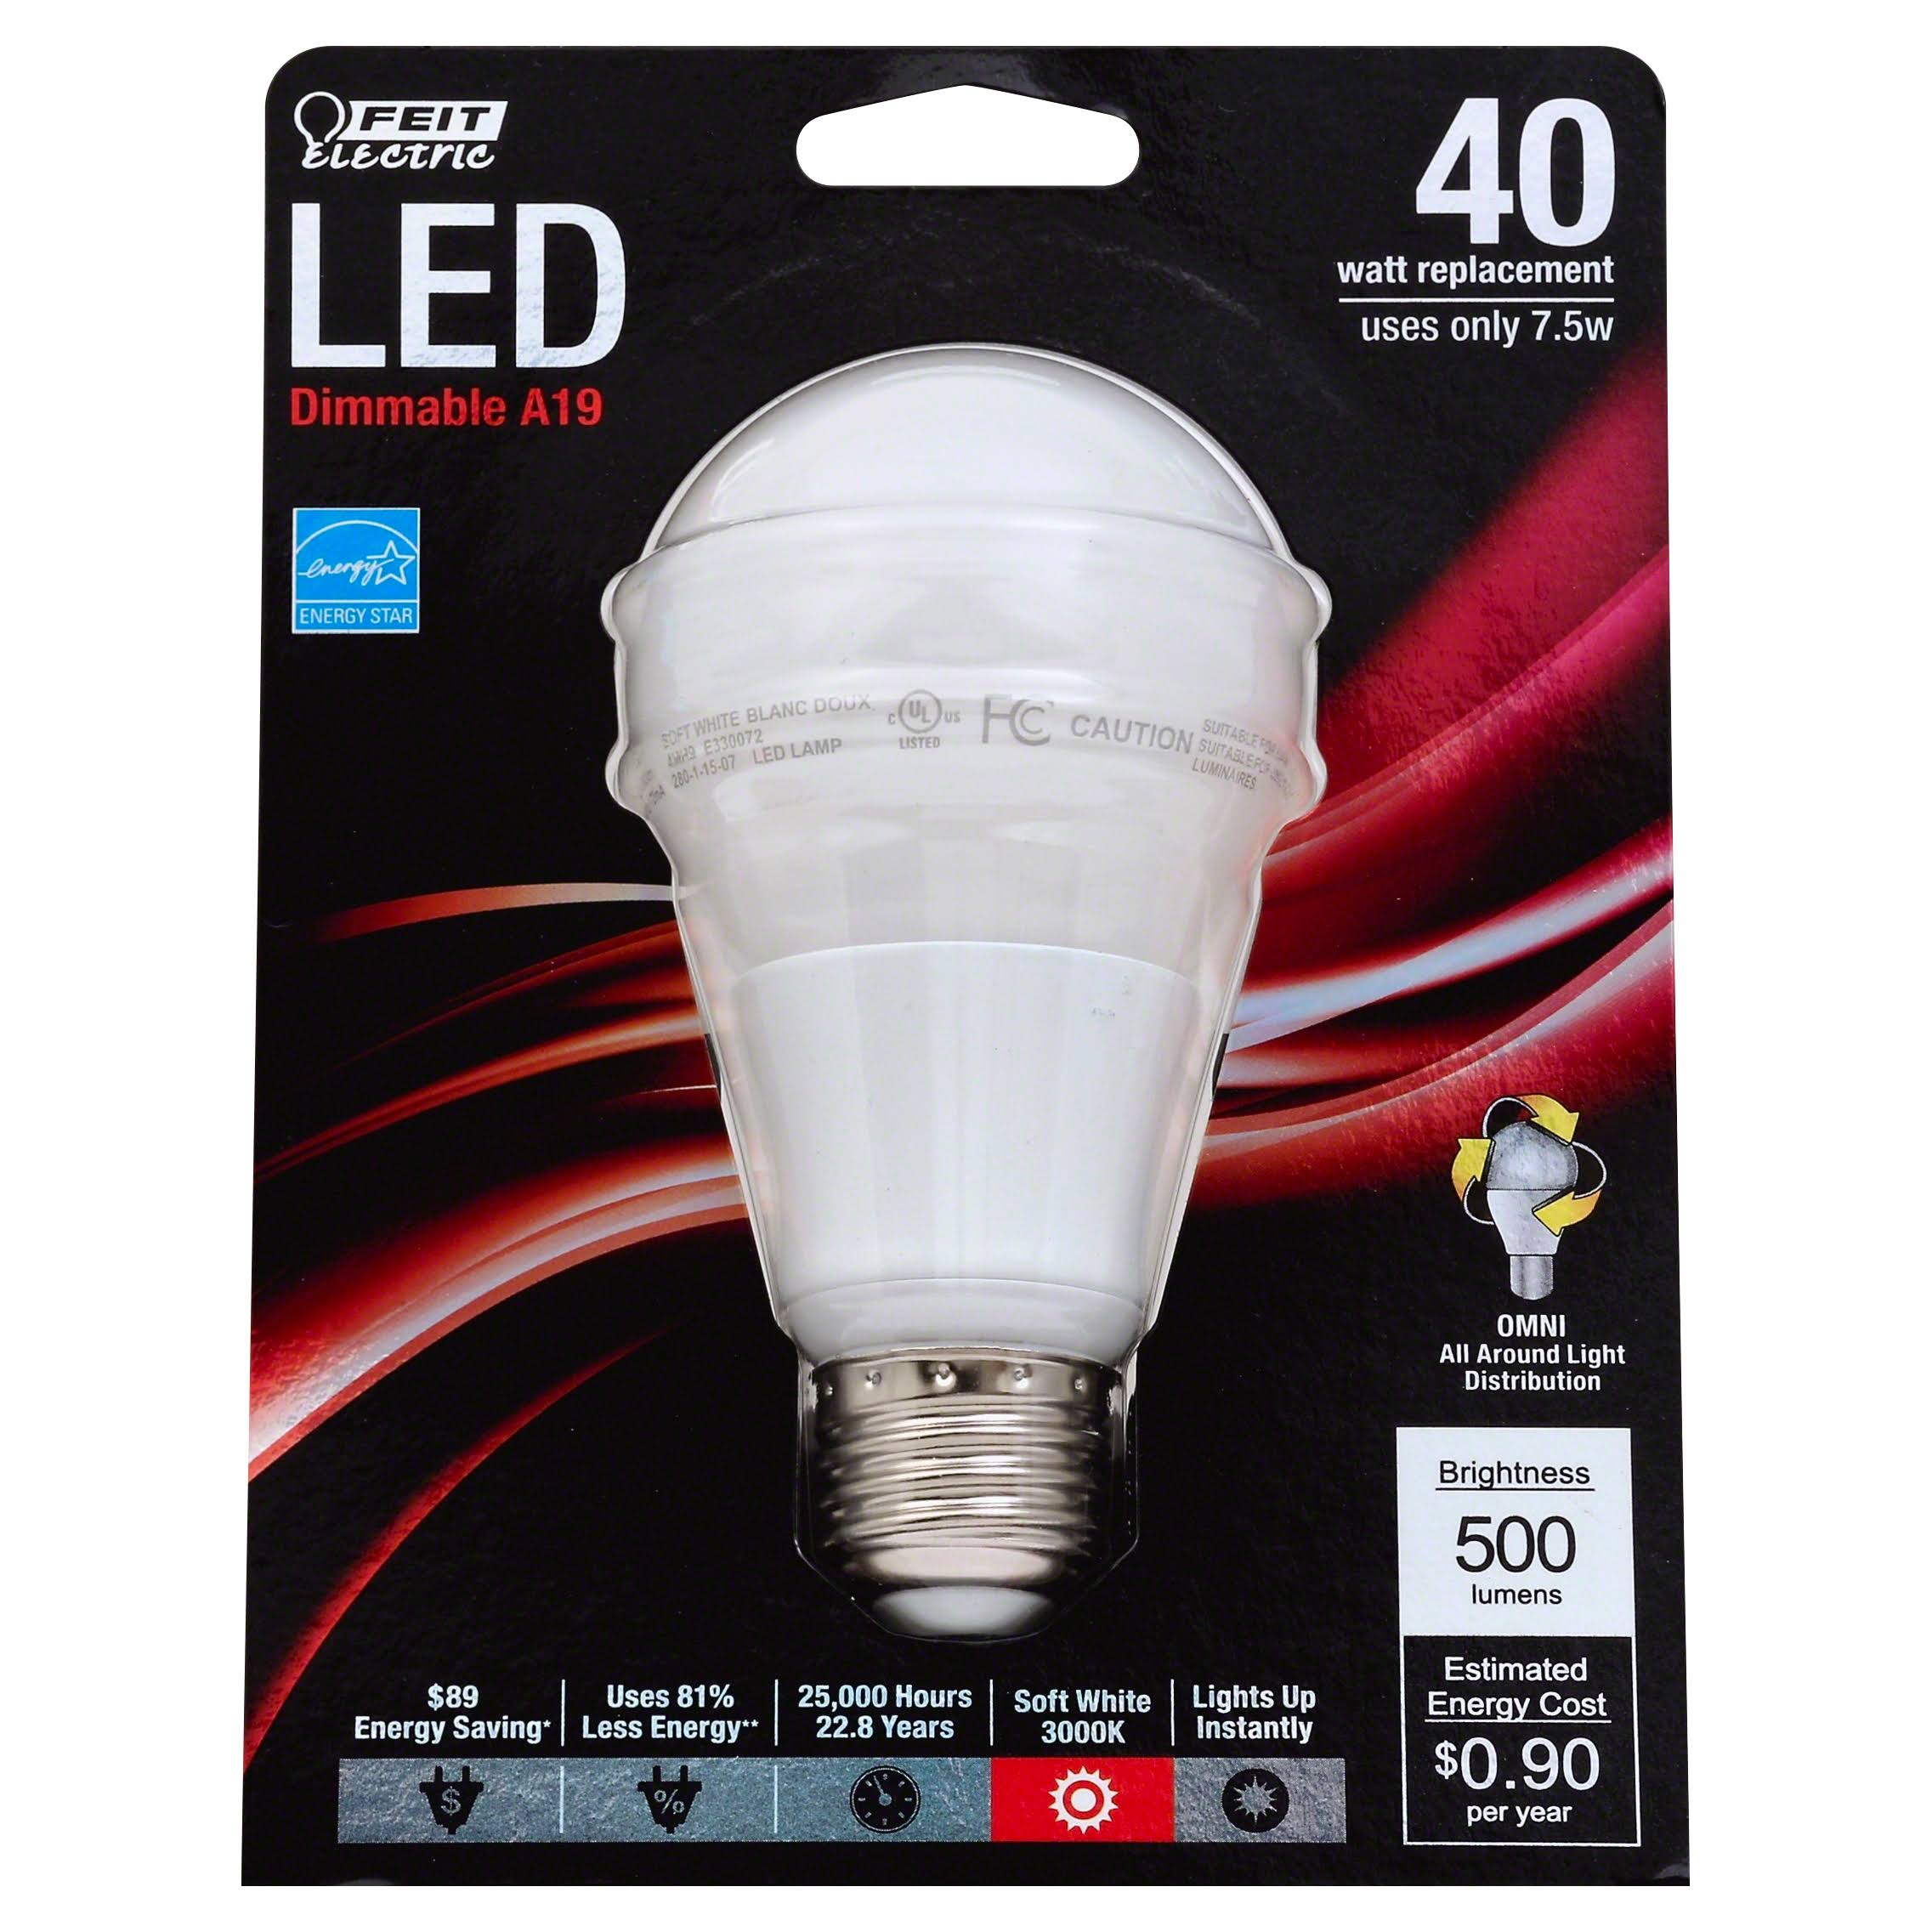 Feit Electric LED Dimmable Light Bulb - 40w